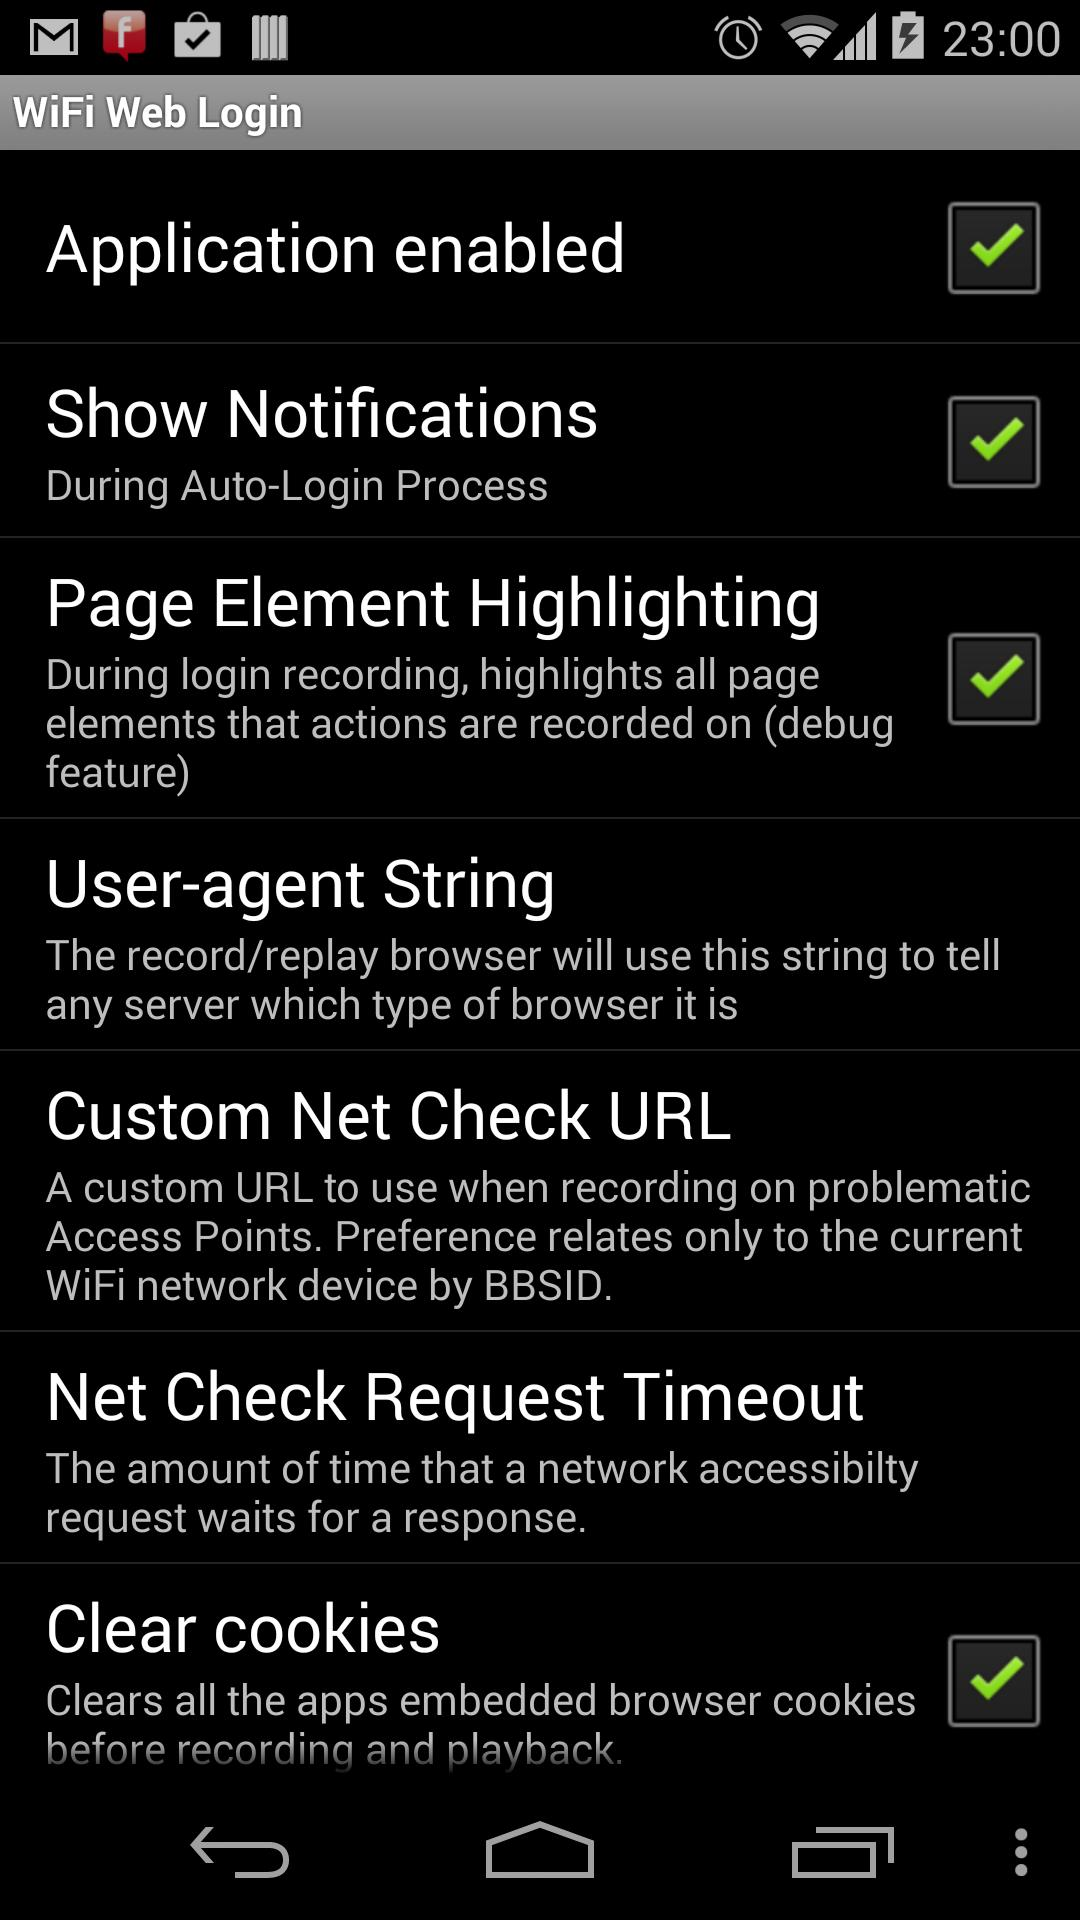 WiFi Web Login for Android - APK Download